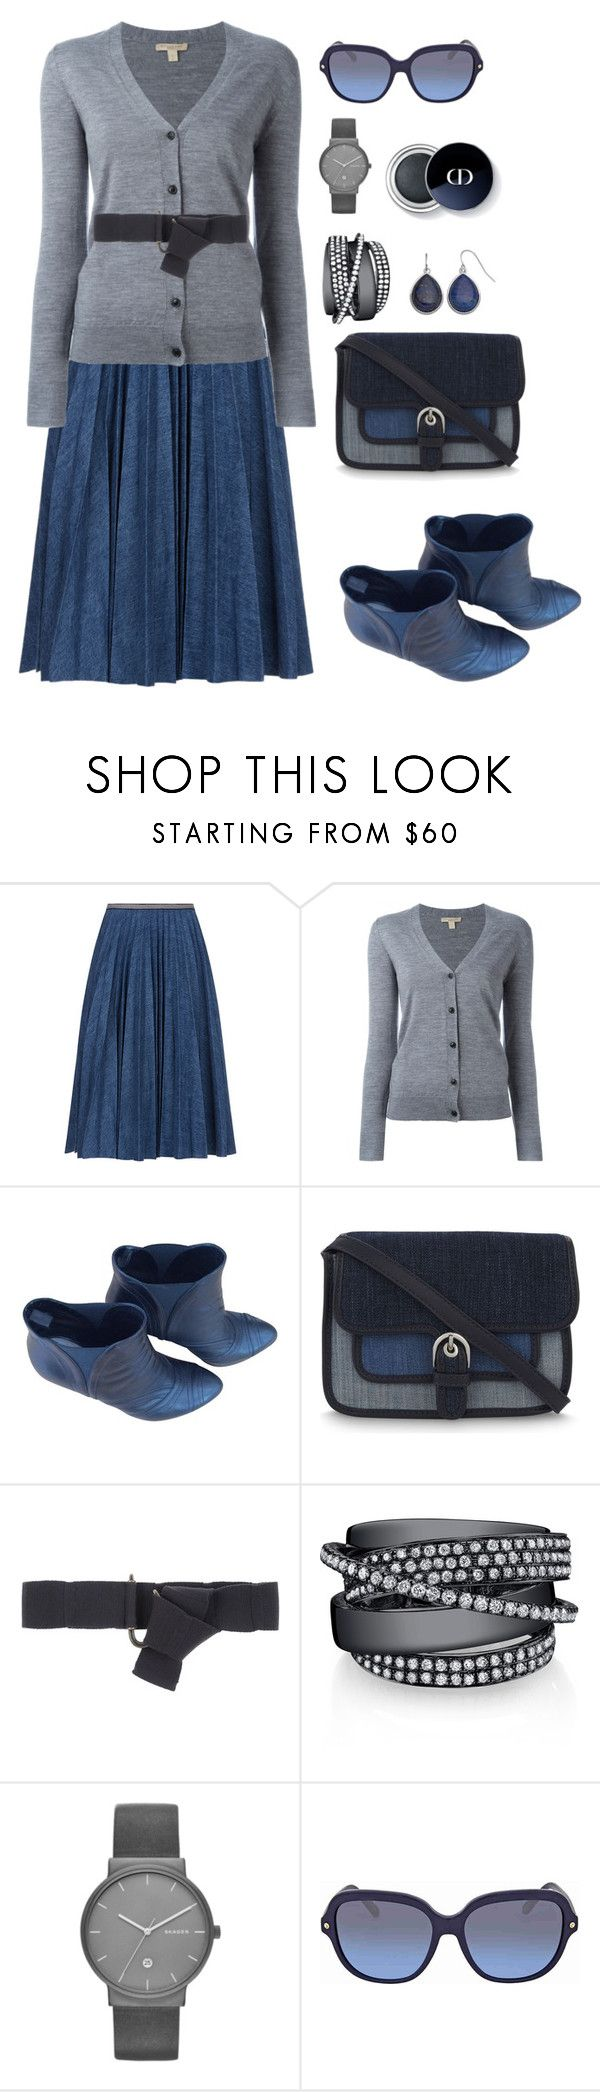 """""""Untitled #1959"""" by ebramos ❤ liked on Polyvore featuring Leur Logette, Burberry, Prada, MICHAEL Michael Kors, BP Studio, Skagen, Coach and Chaps"""